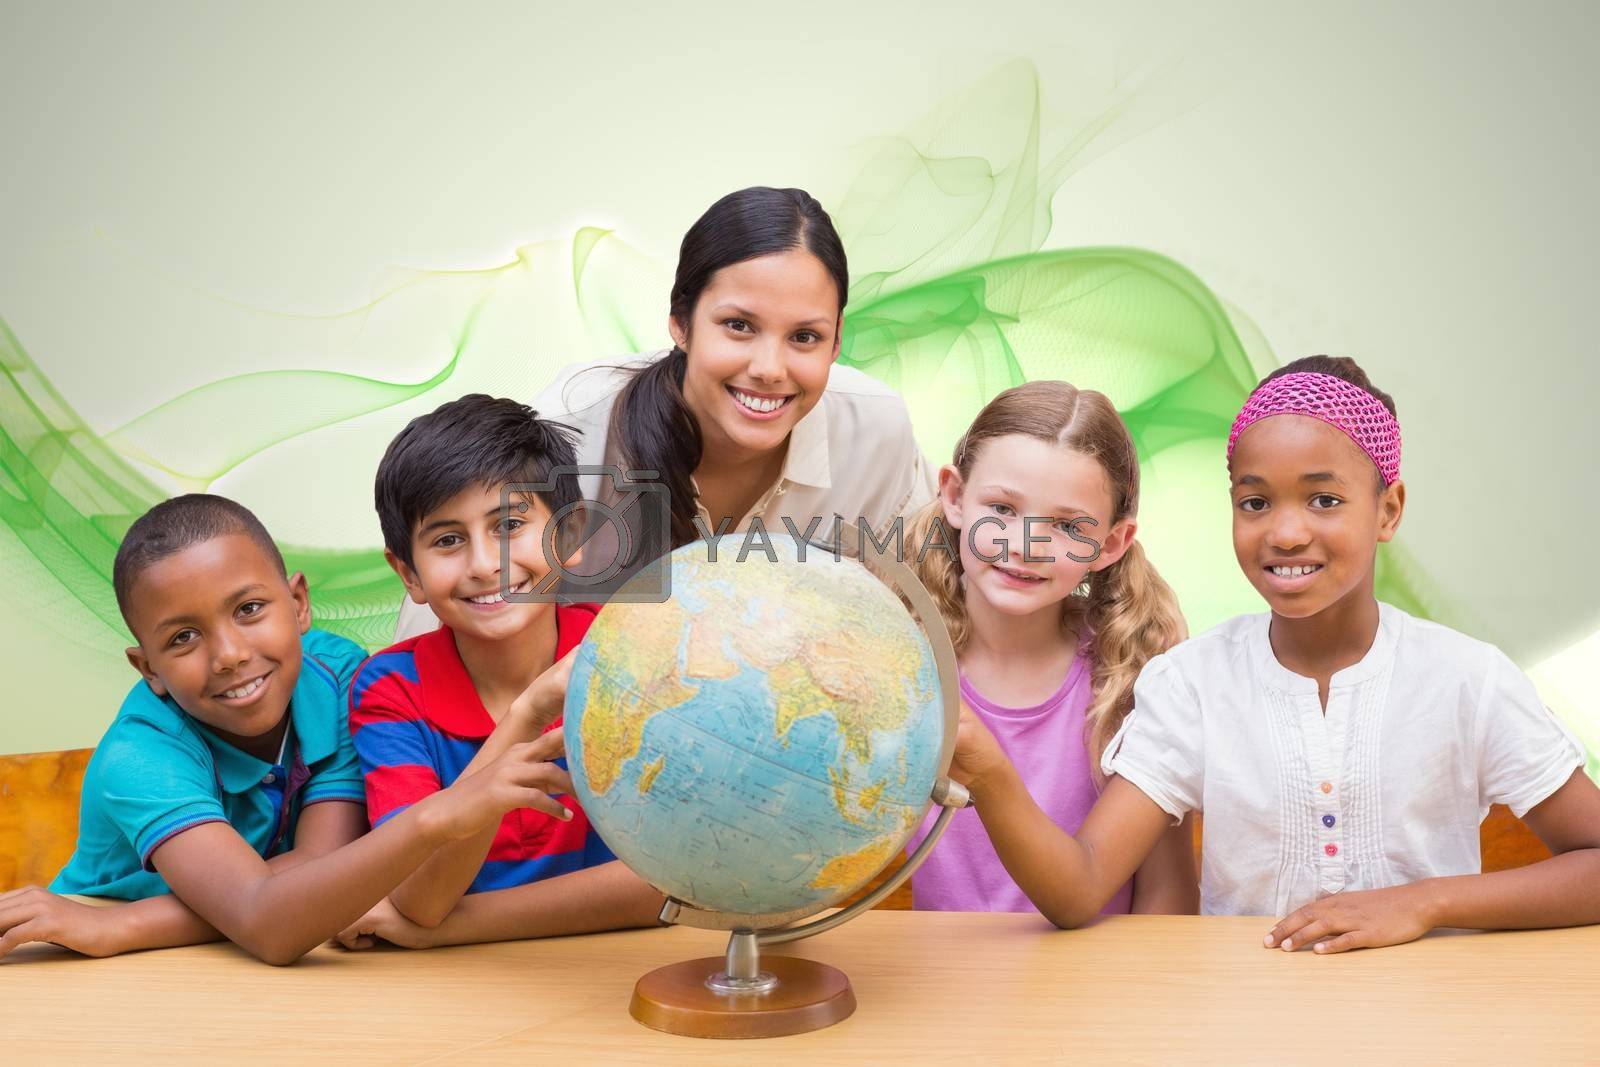 Cute pupils and teacher looking at globe in library  against green abstract design